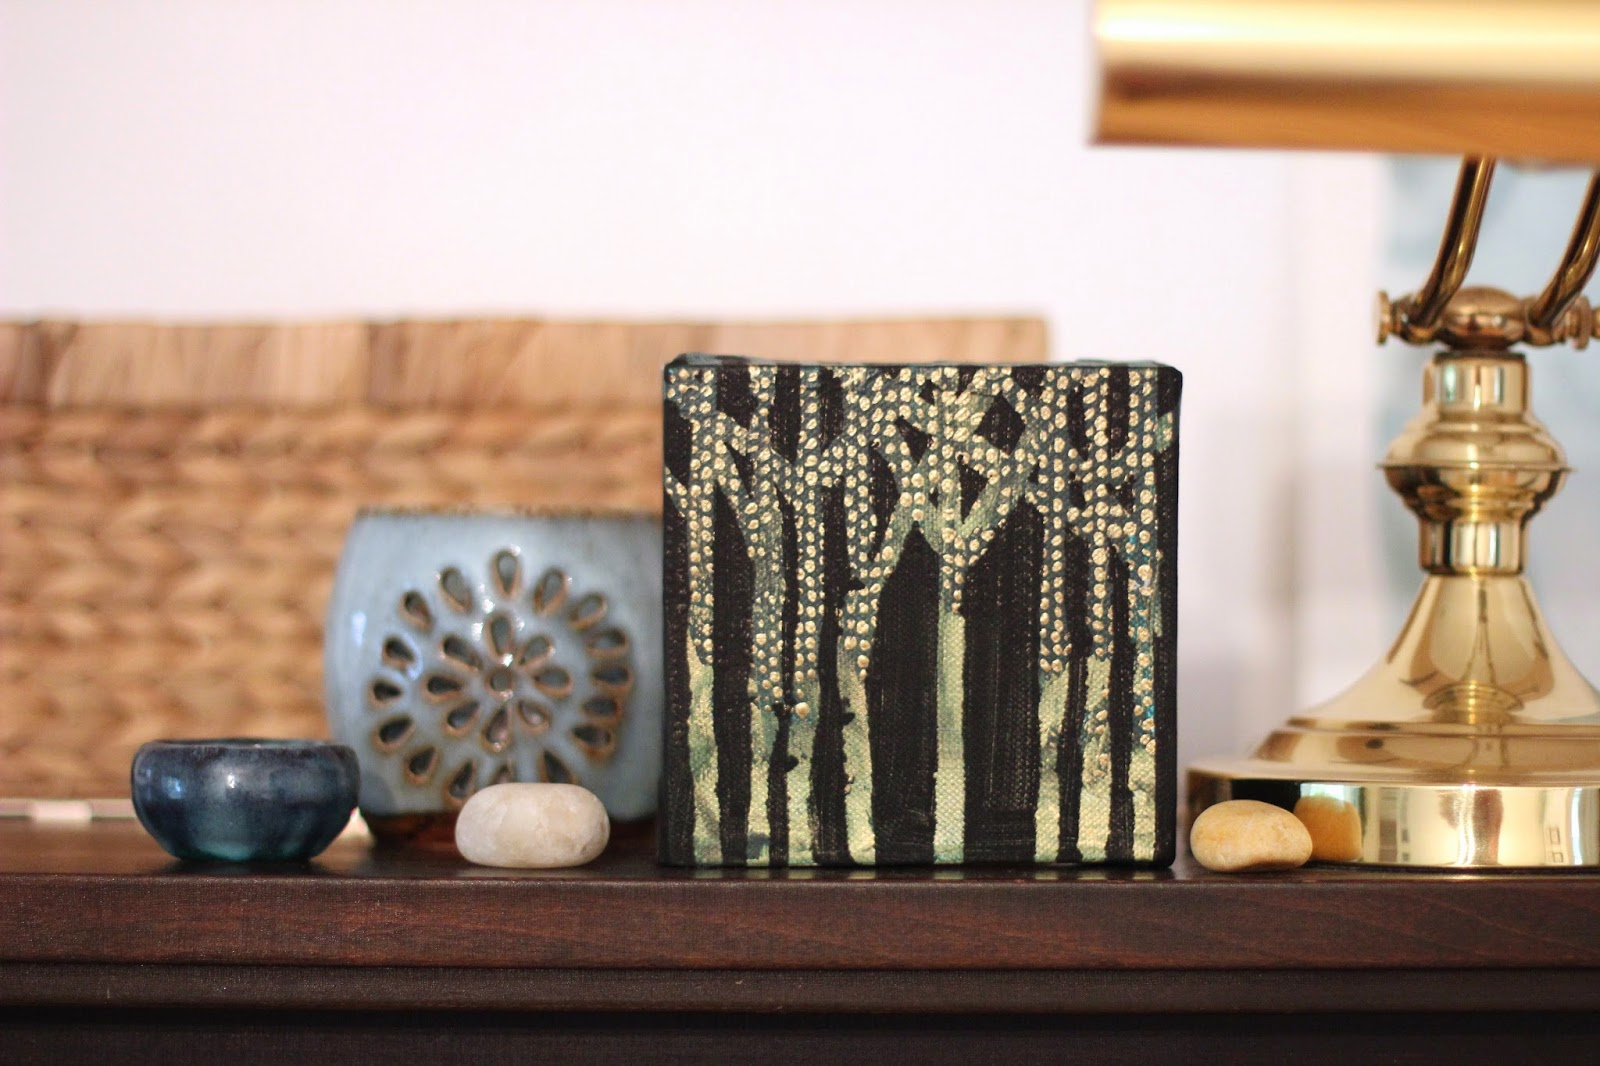 https://www.etsy.com/ca/listing/204107741/enchanted-evening-trees?ref=shop_home_active_1